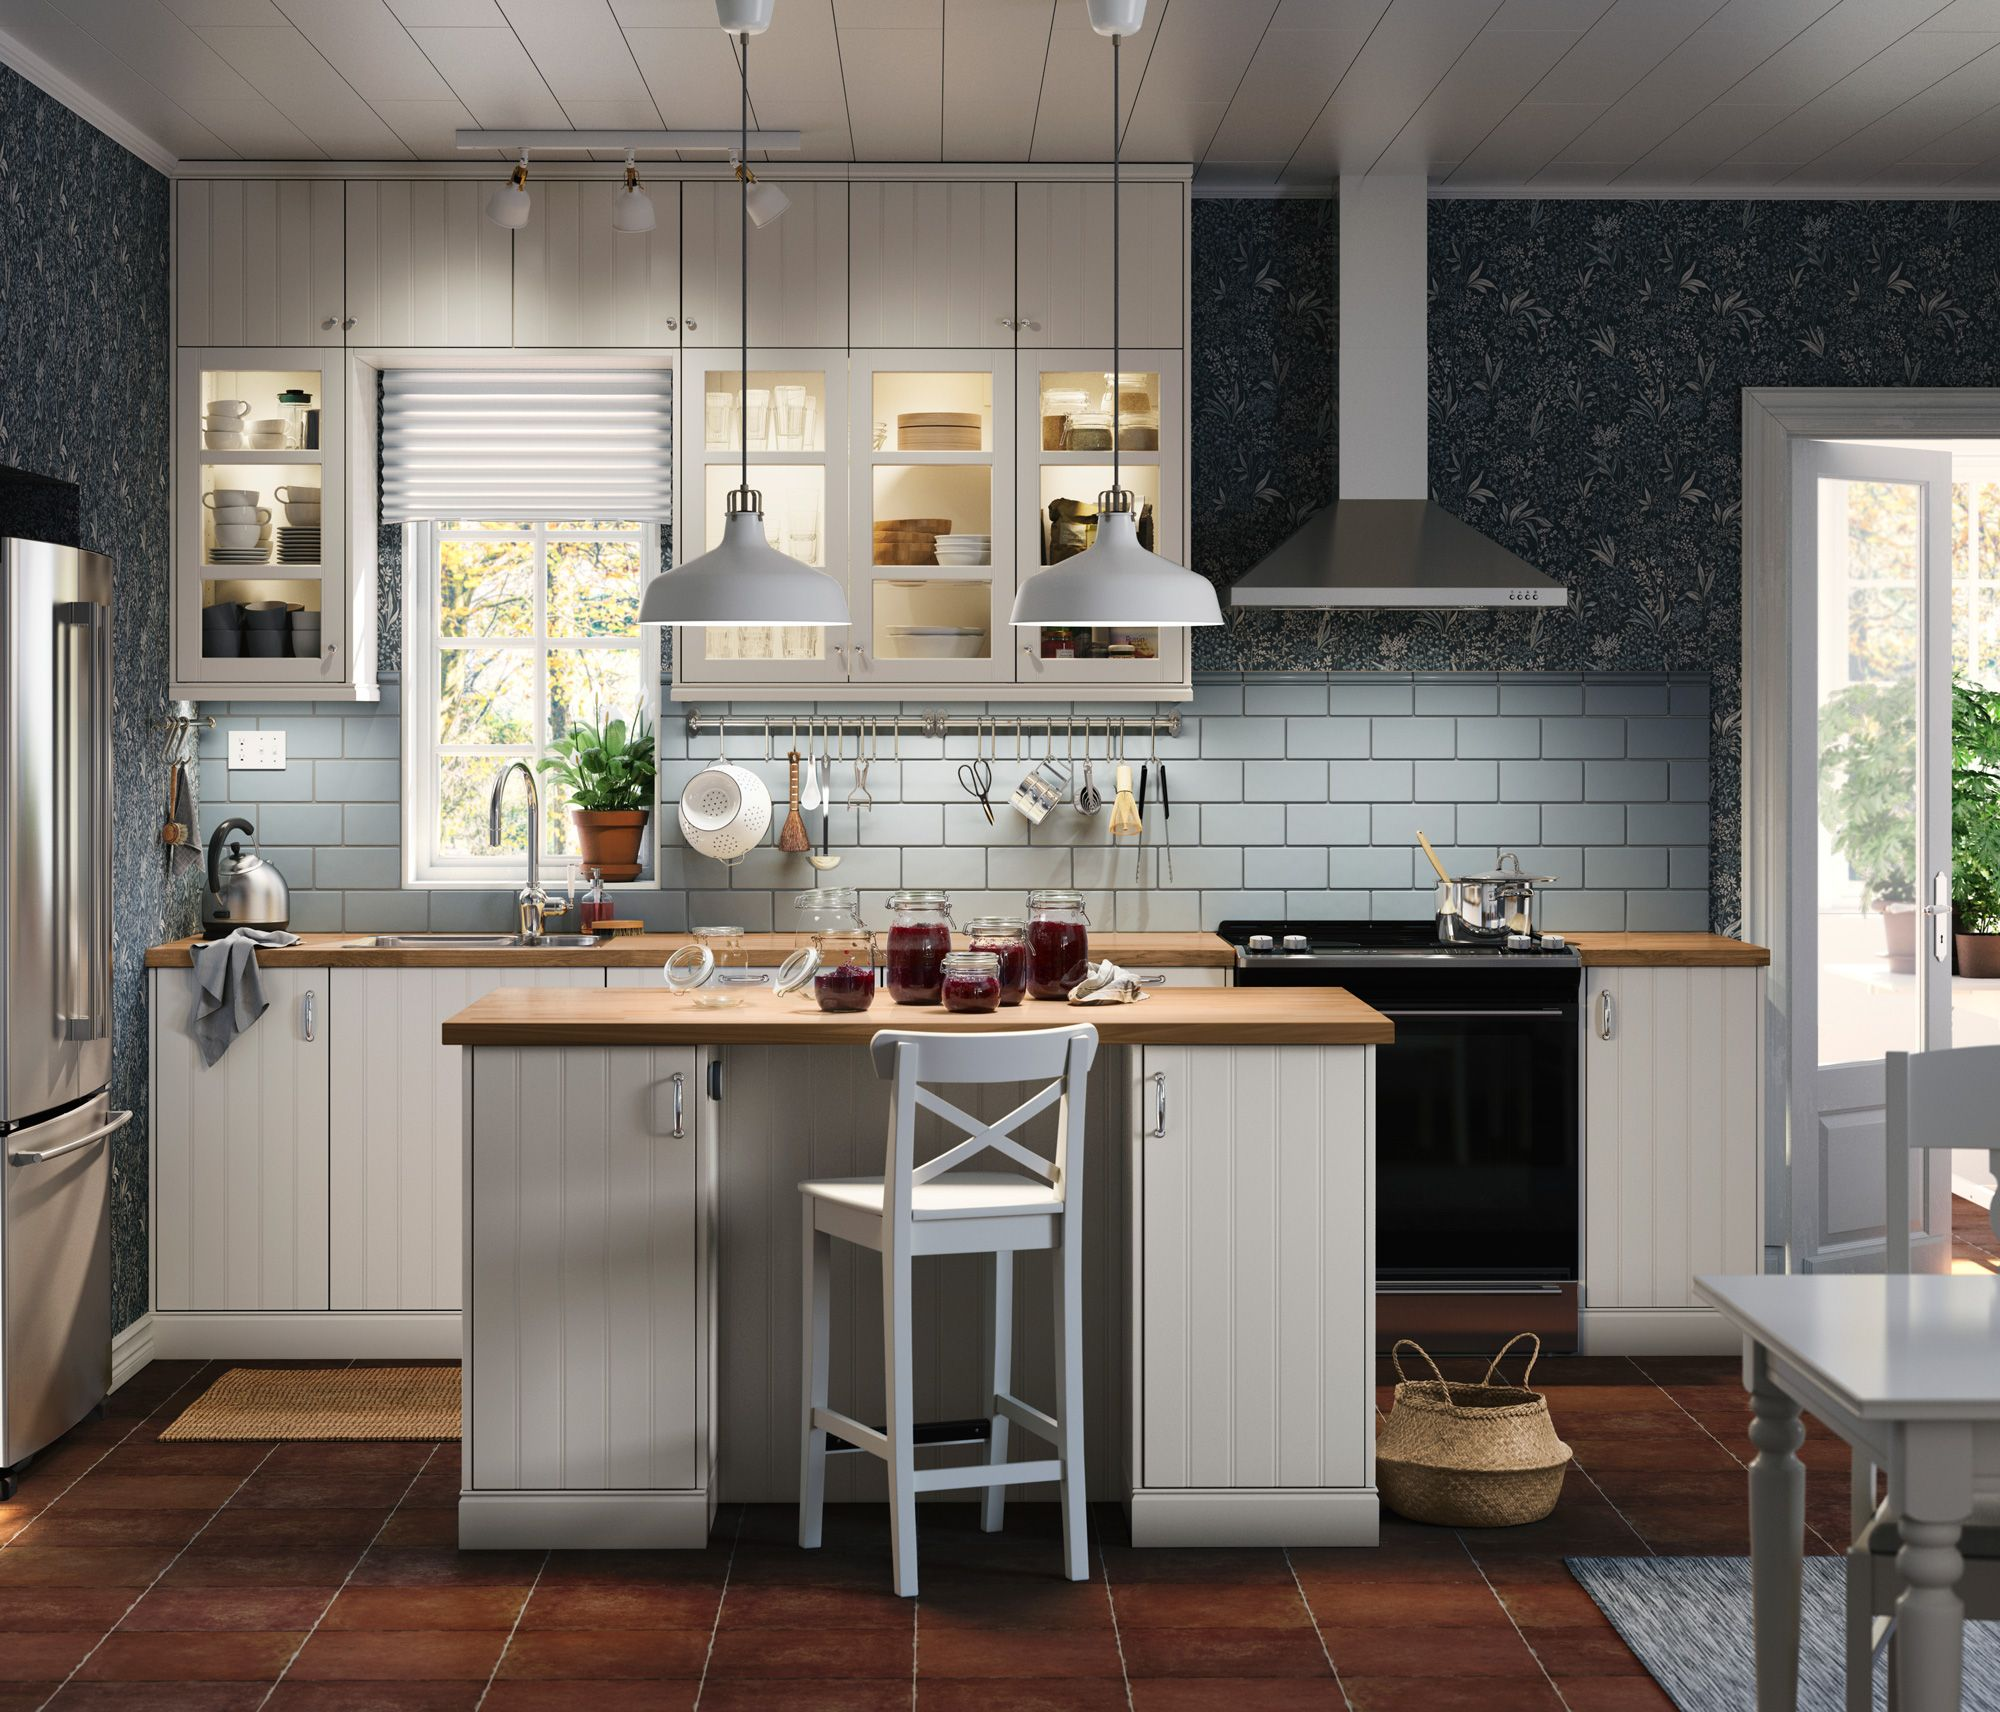 12 Cozy Farmhouse Kitchen Design Elements Kitchen Decor Tips